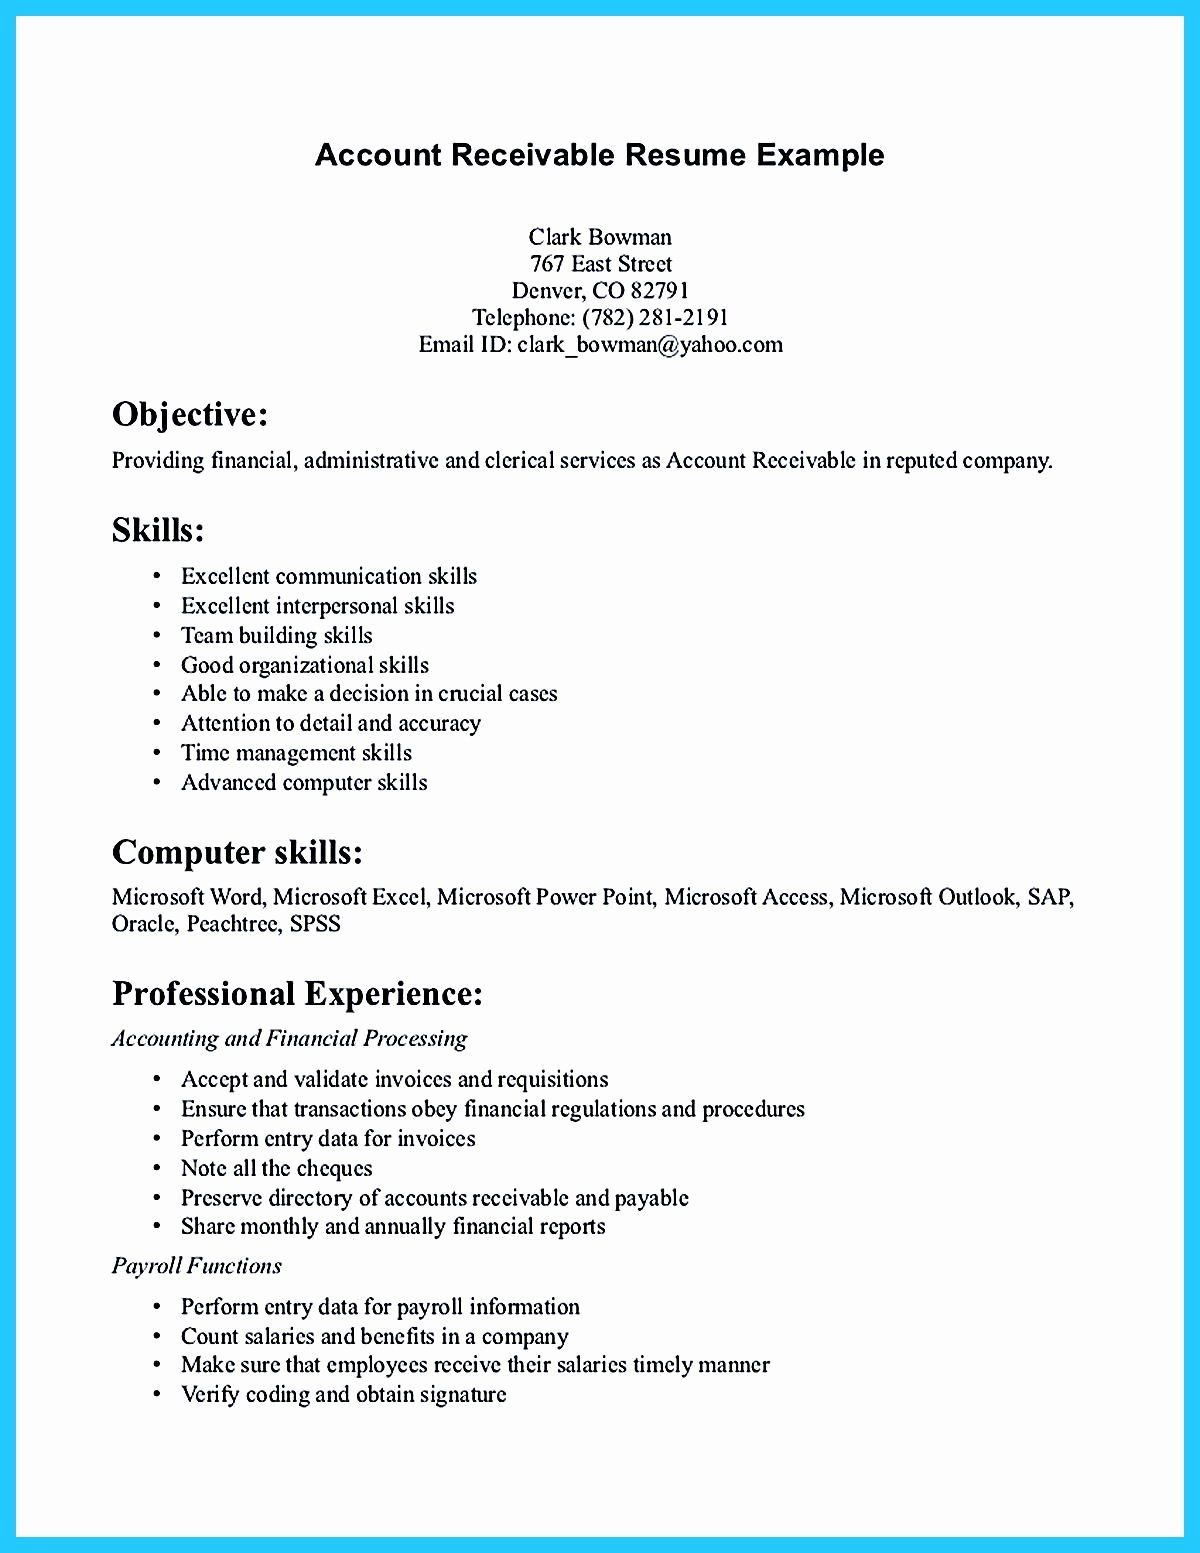 Account Receivable Resume Examples Lovely Accounts Receivable